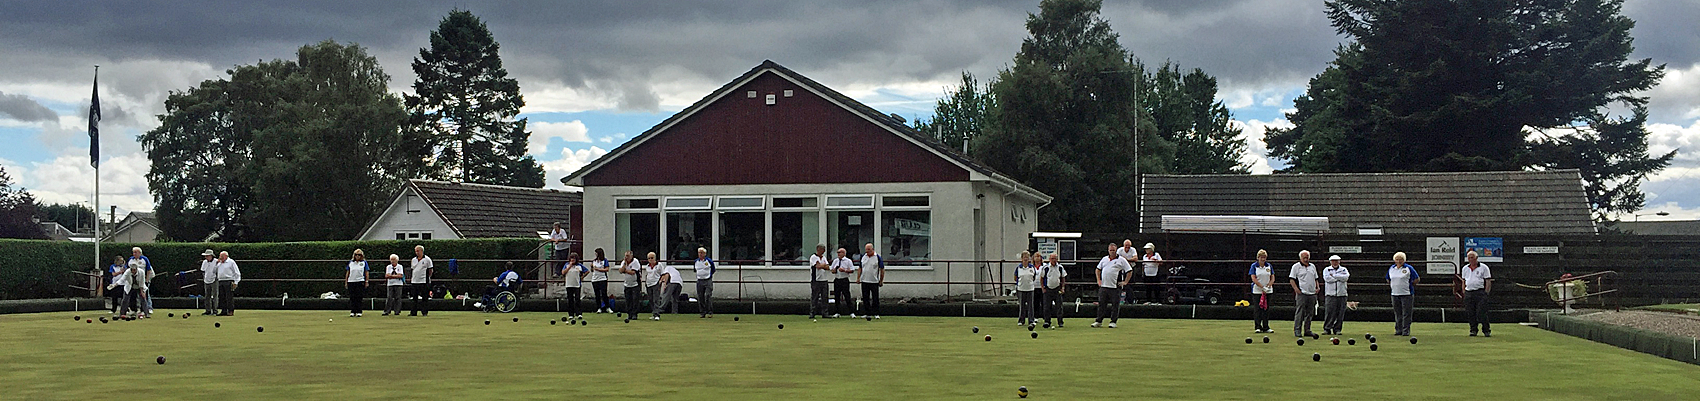 Blairgowrie Bowling Club - on the green